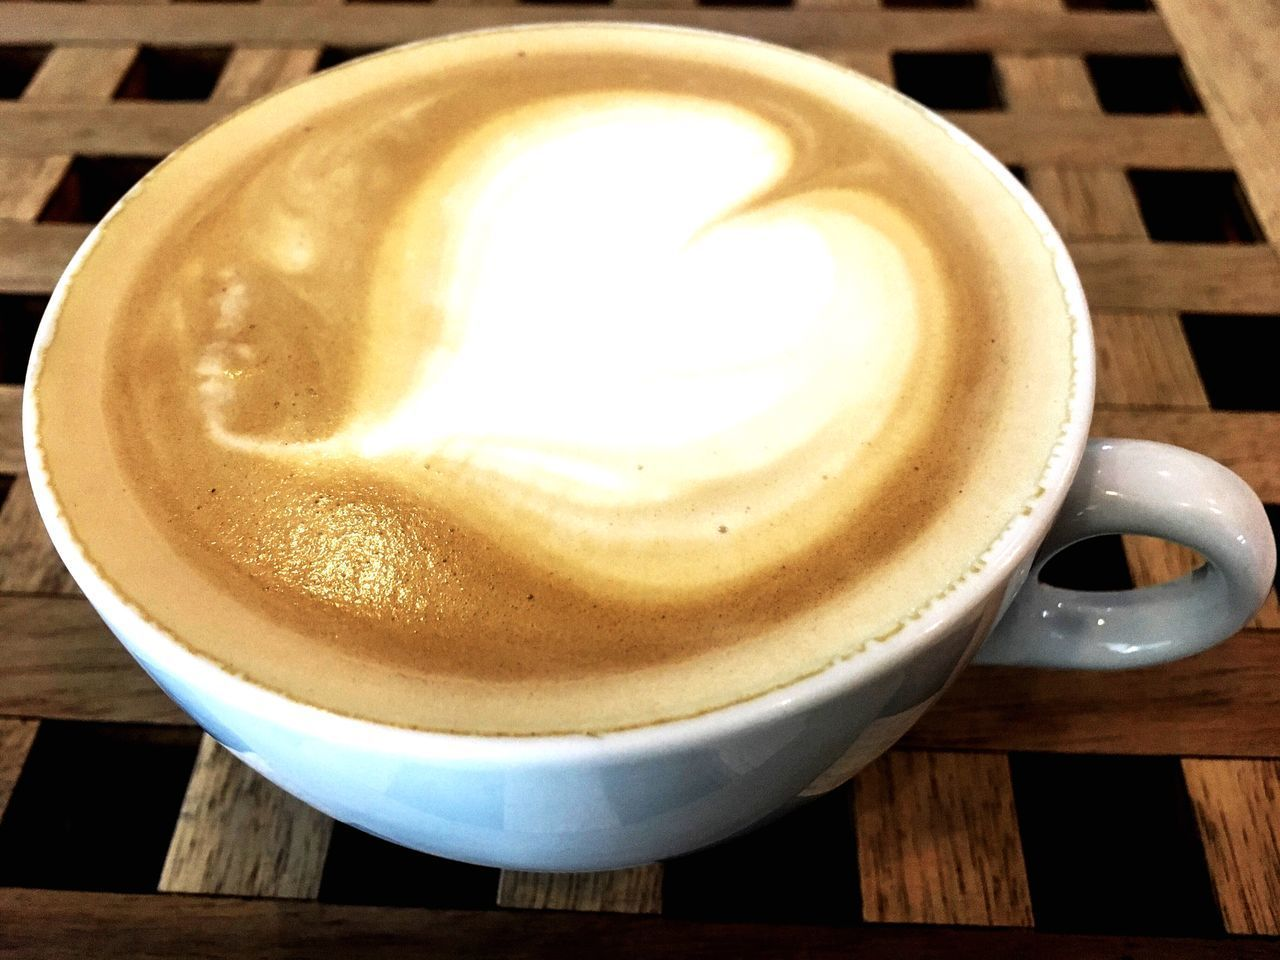 CLOSE-UP OF CAPPUCCINO IN CUP ON TABLE